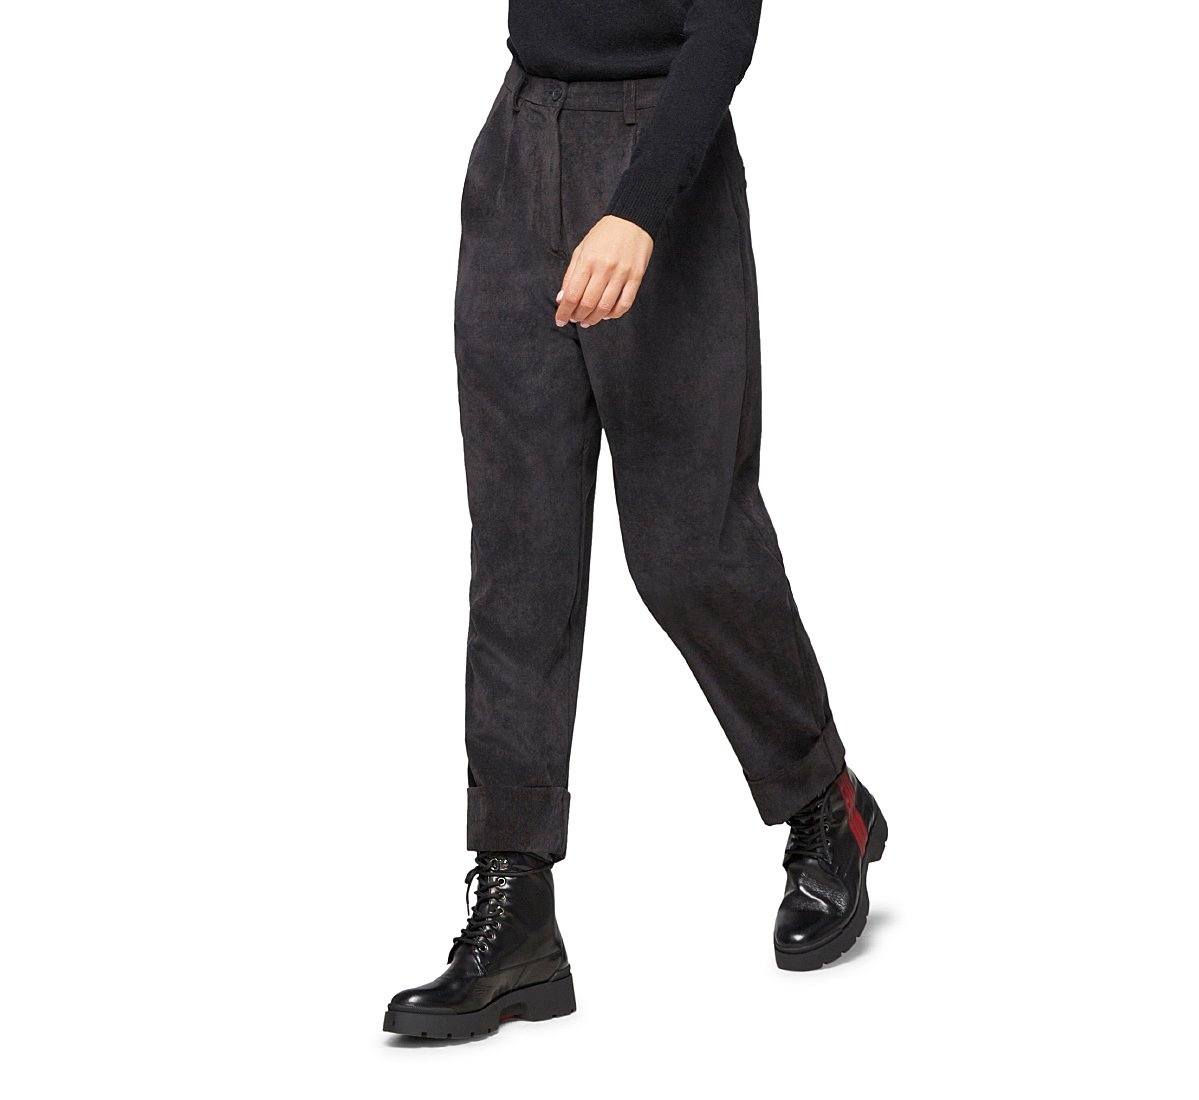 Oversized, high-waisted trousers